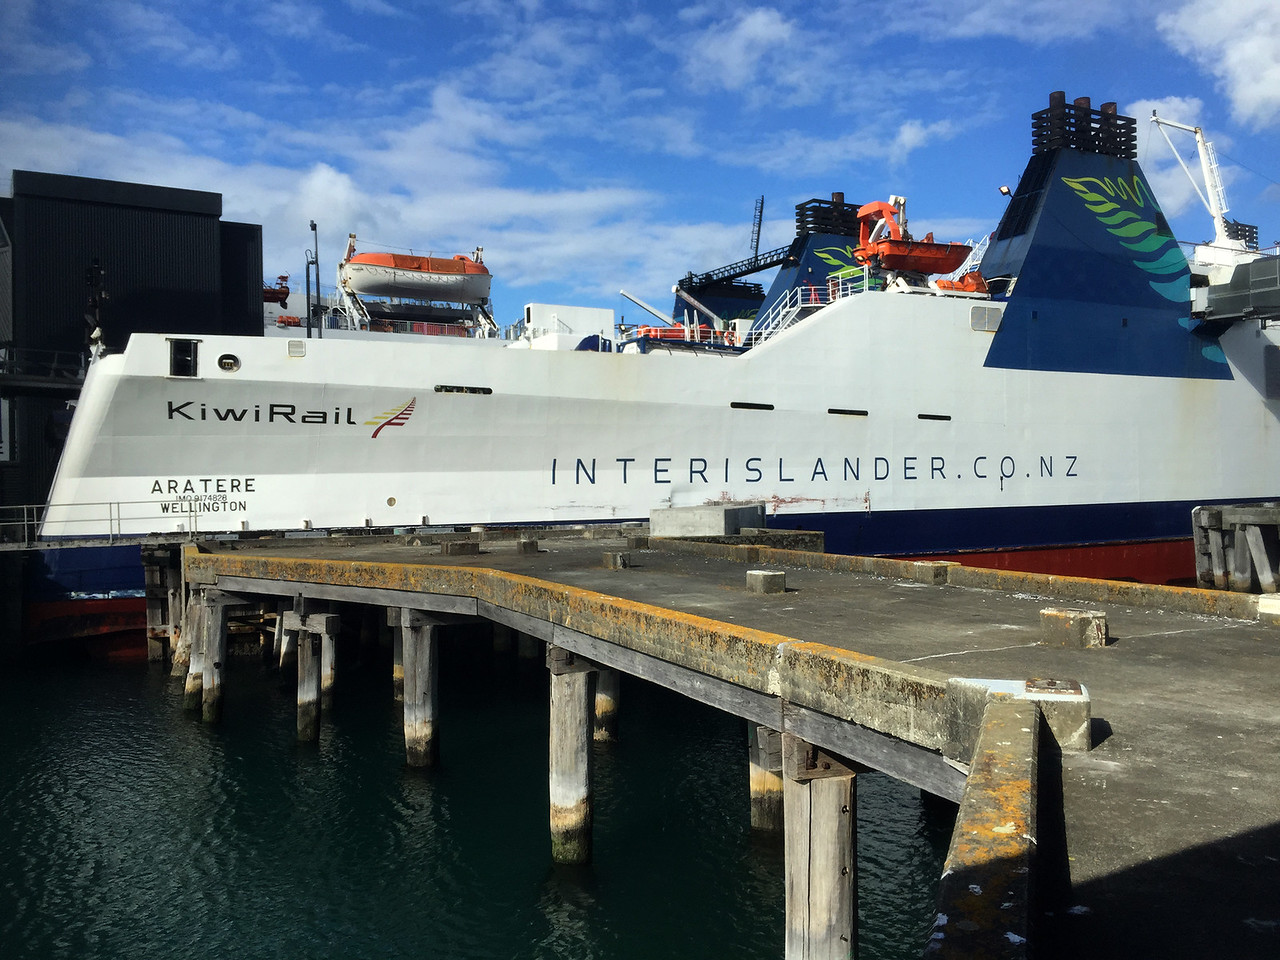 The Interislander ferry from Wellington to Picton, New Zealand